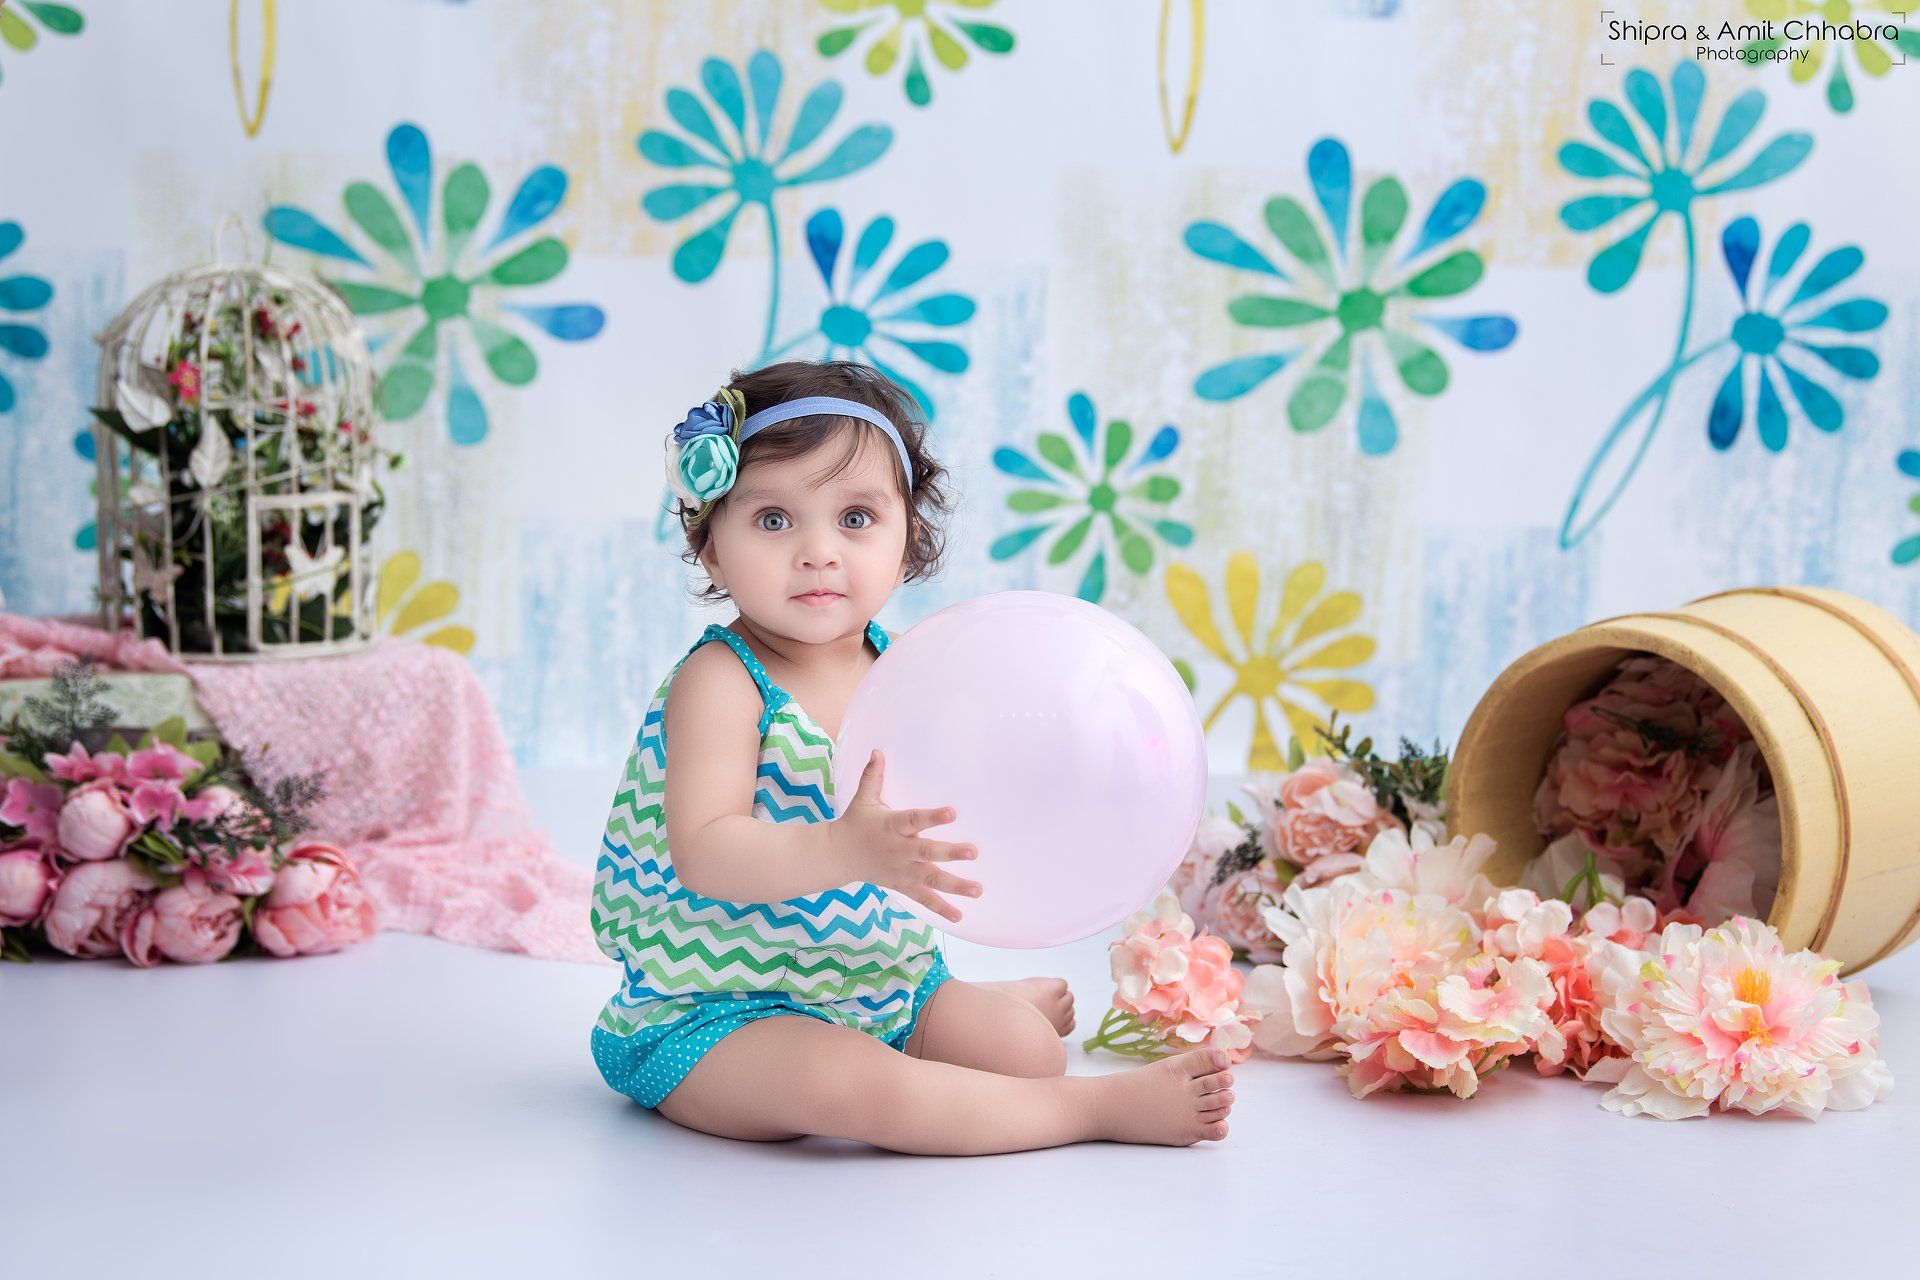 Baby photoshoot infant photography ideas indoor shoots for kids floral set up ideas baby photography shipra amit chhabra photography